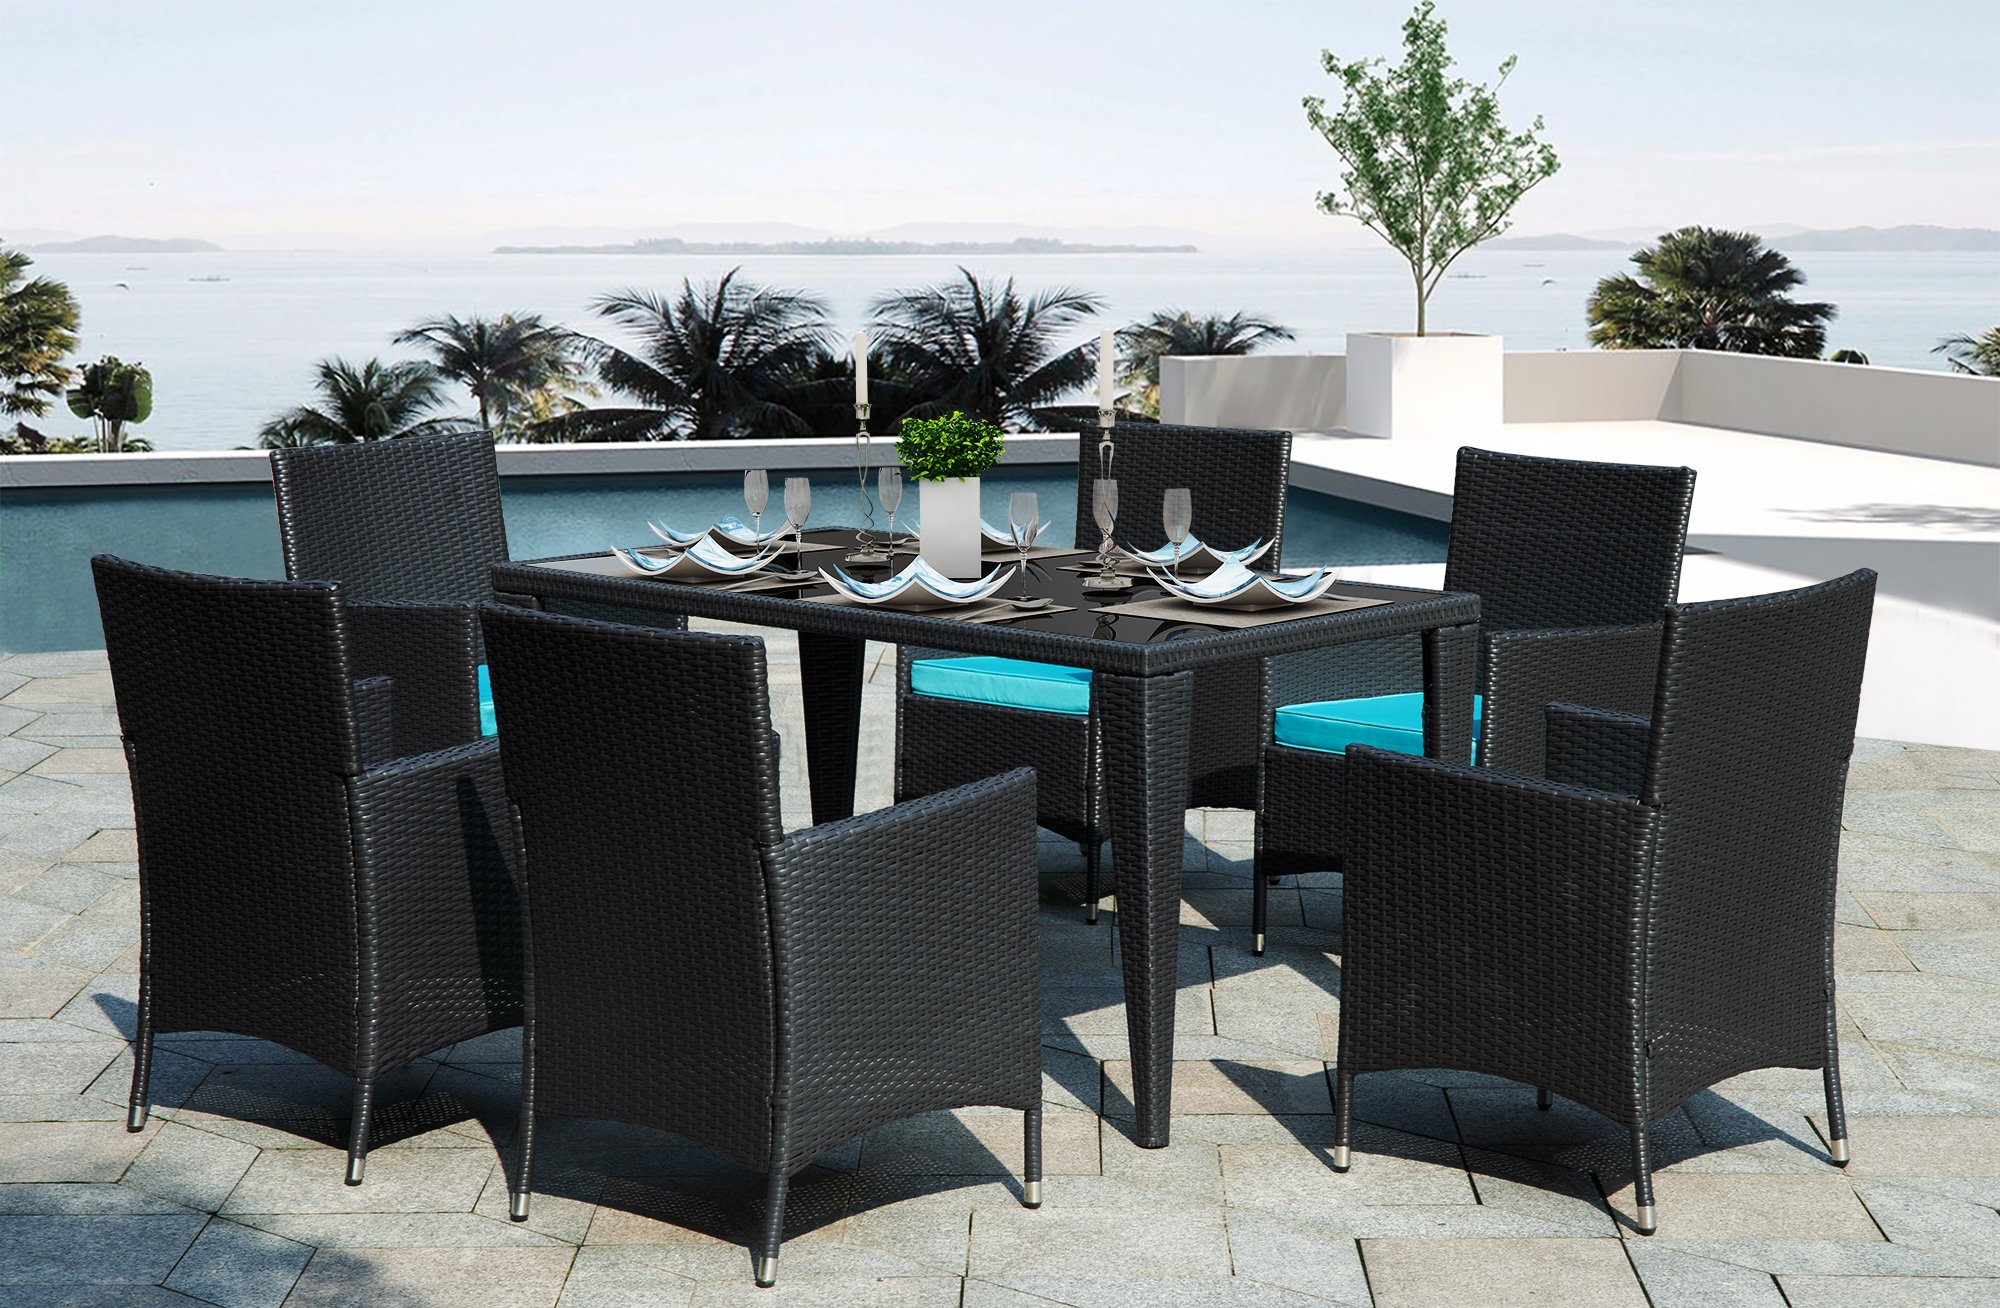 7 Piece Outdoor Dining Sets For 6 All Weathe Wicker Chairs With Glass Dining Table Rectangle Patio Sofa Furniture Set With Removable Cushions For Backyard Porch Garden Poolside L986 Walmart Com Walmart Com